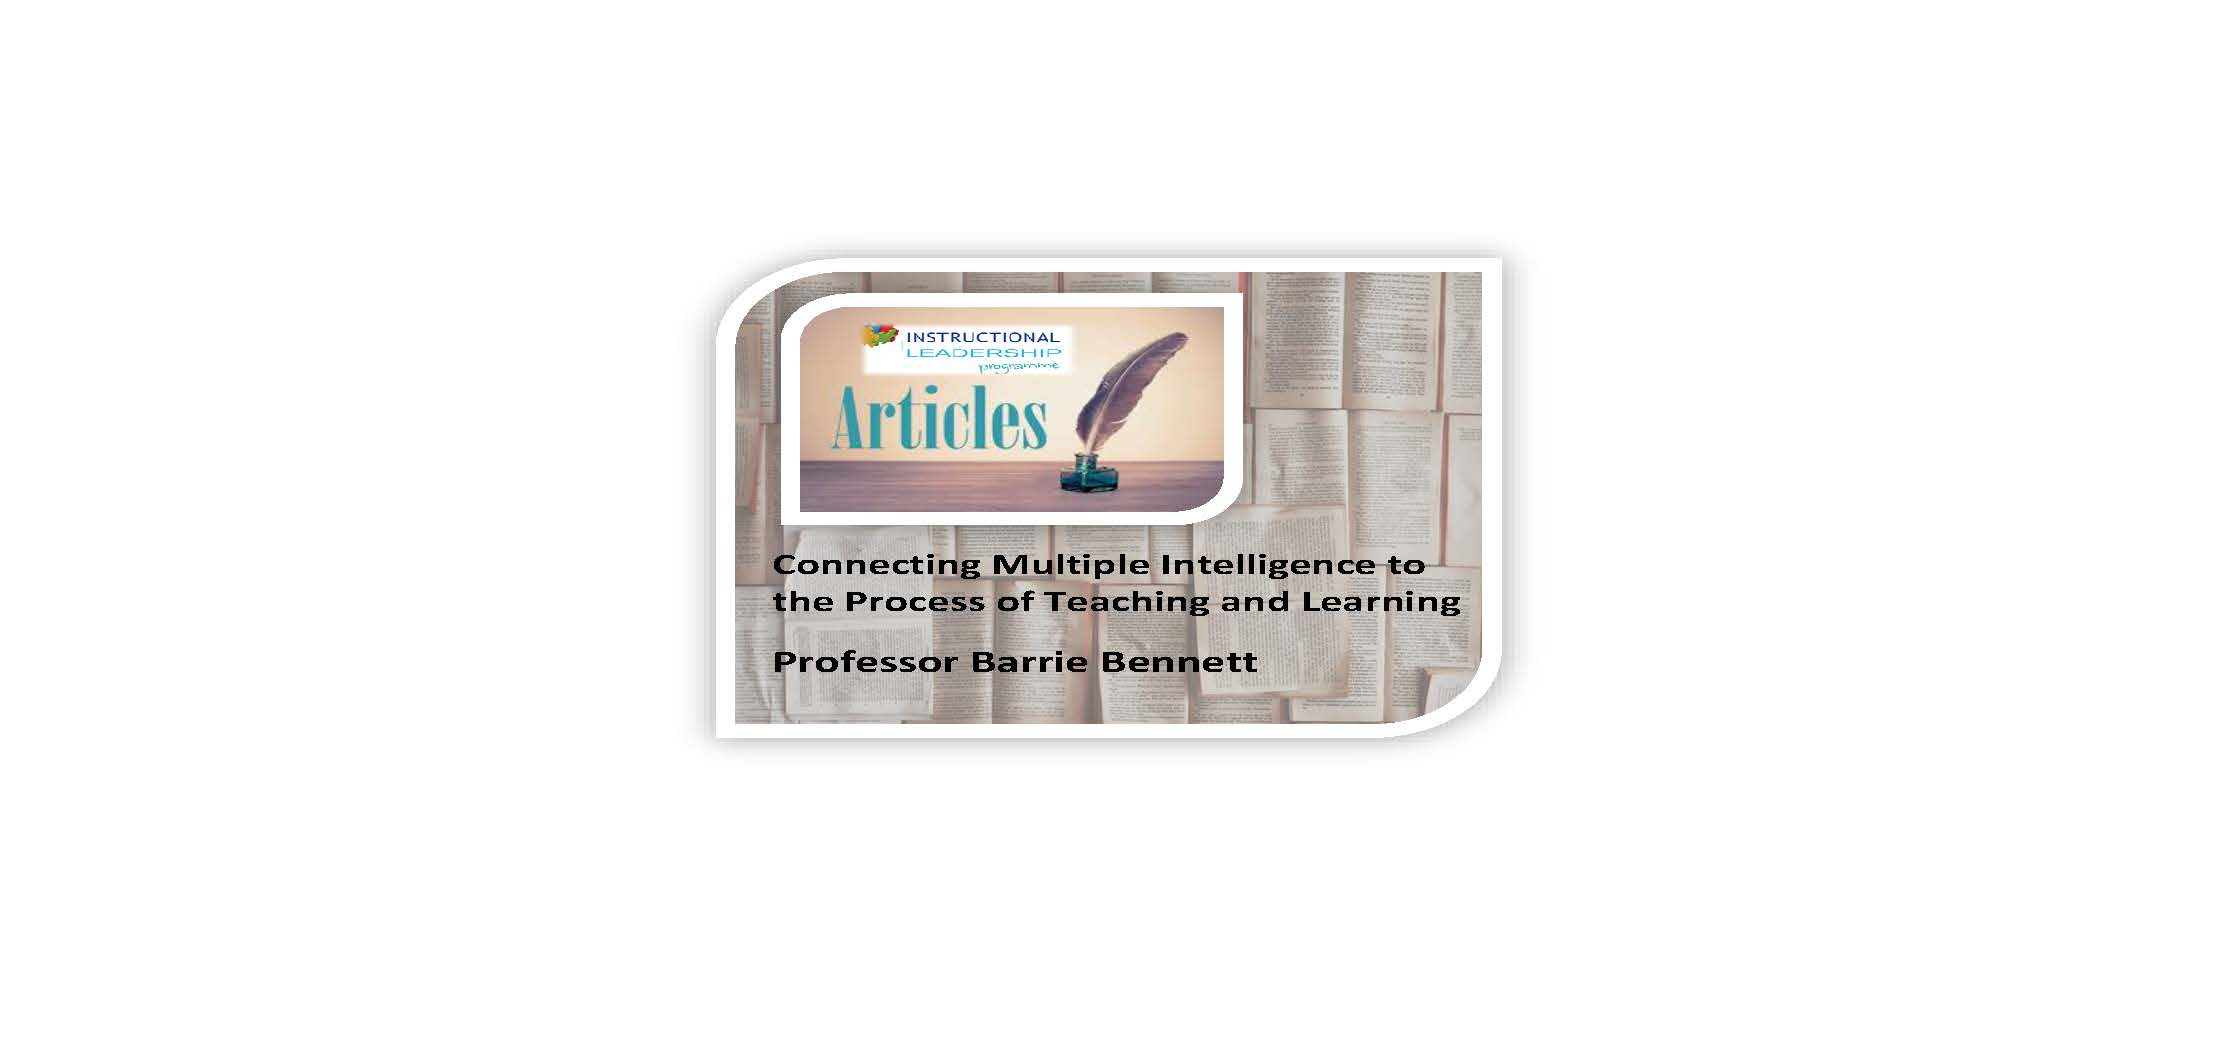 Articles – Connecting Multiple Intelligence to the Process of Teaching and Learning